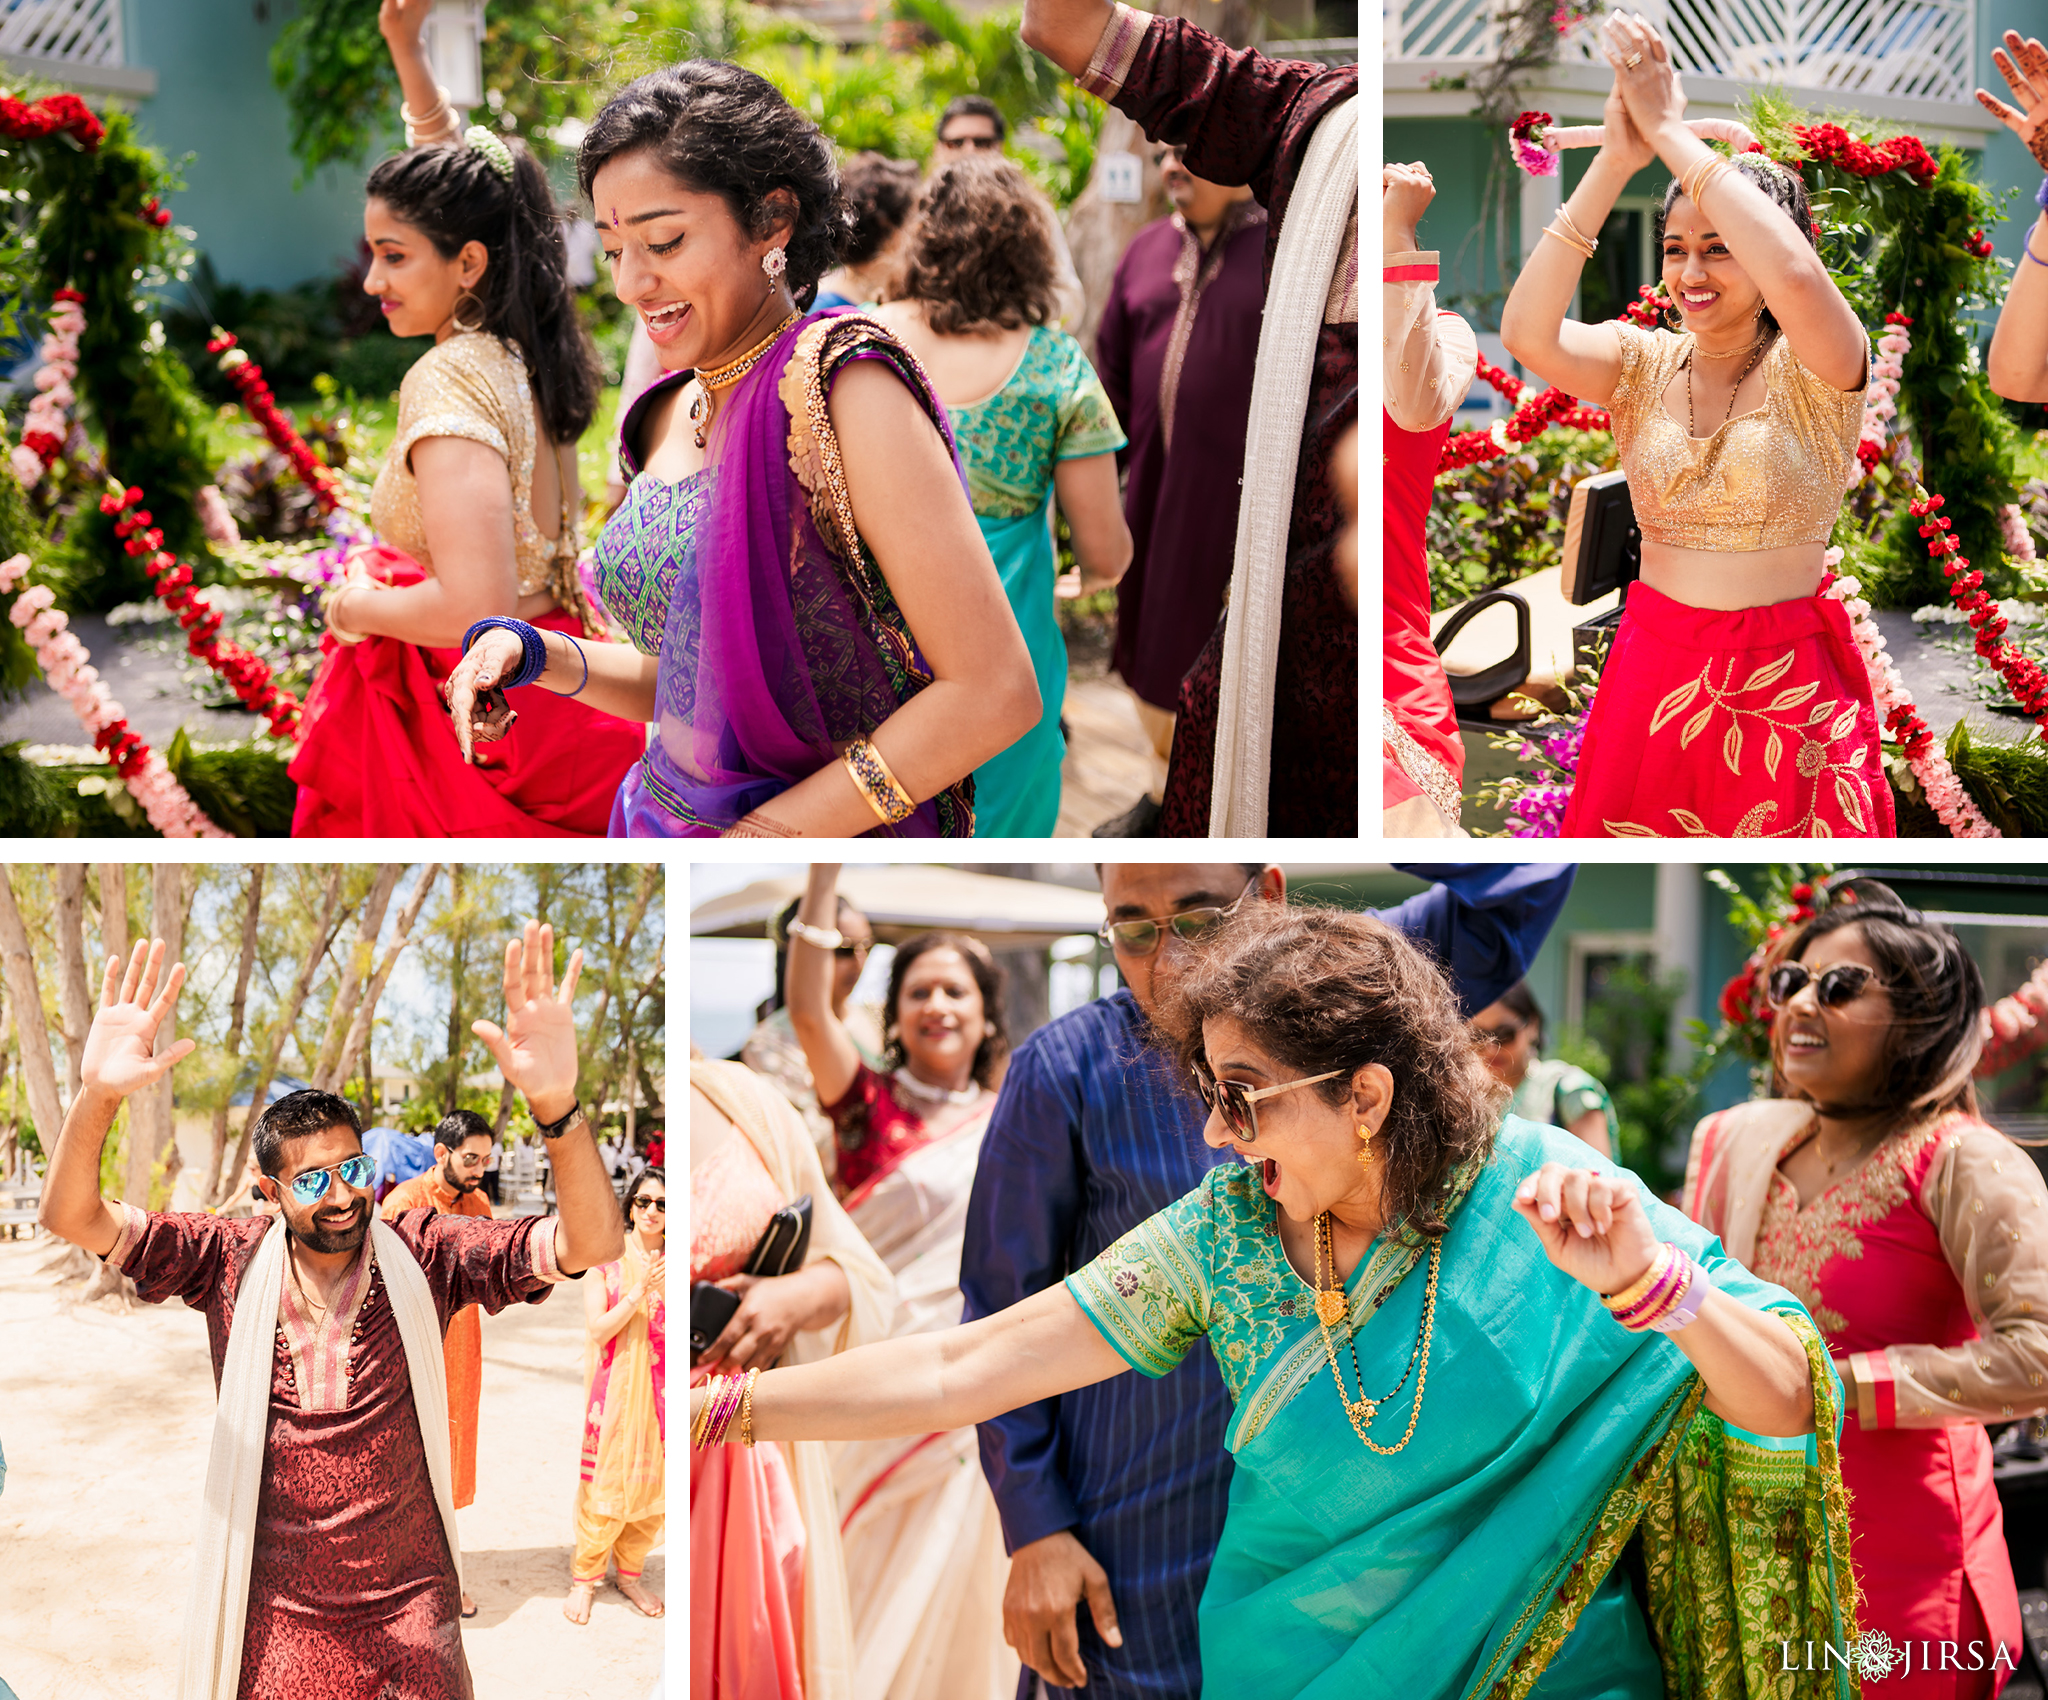 13 Turks and Caicos Travel Indian Wedding Photography